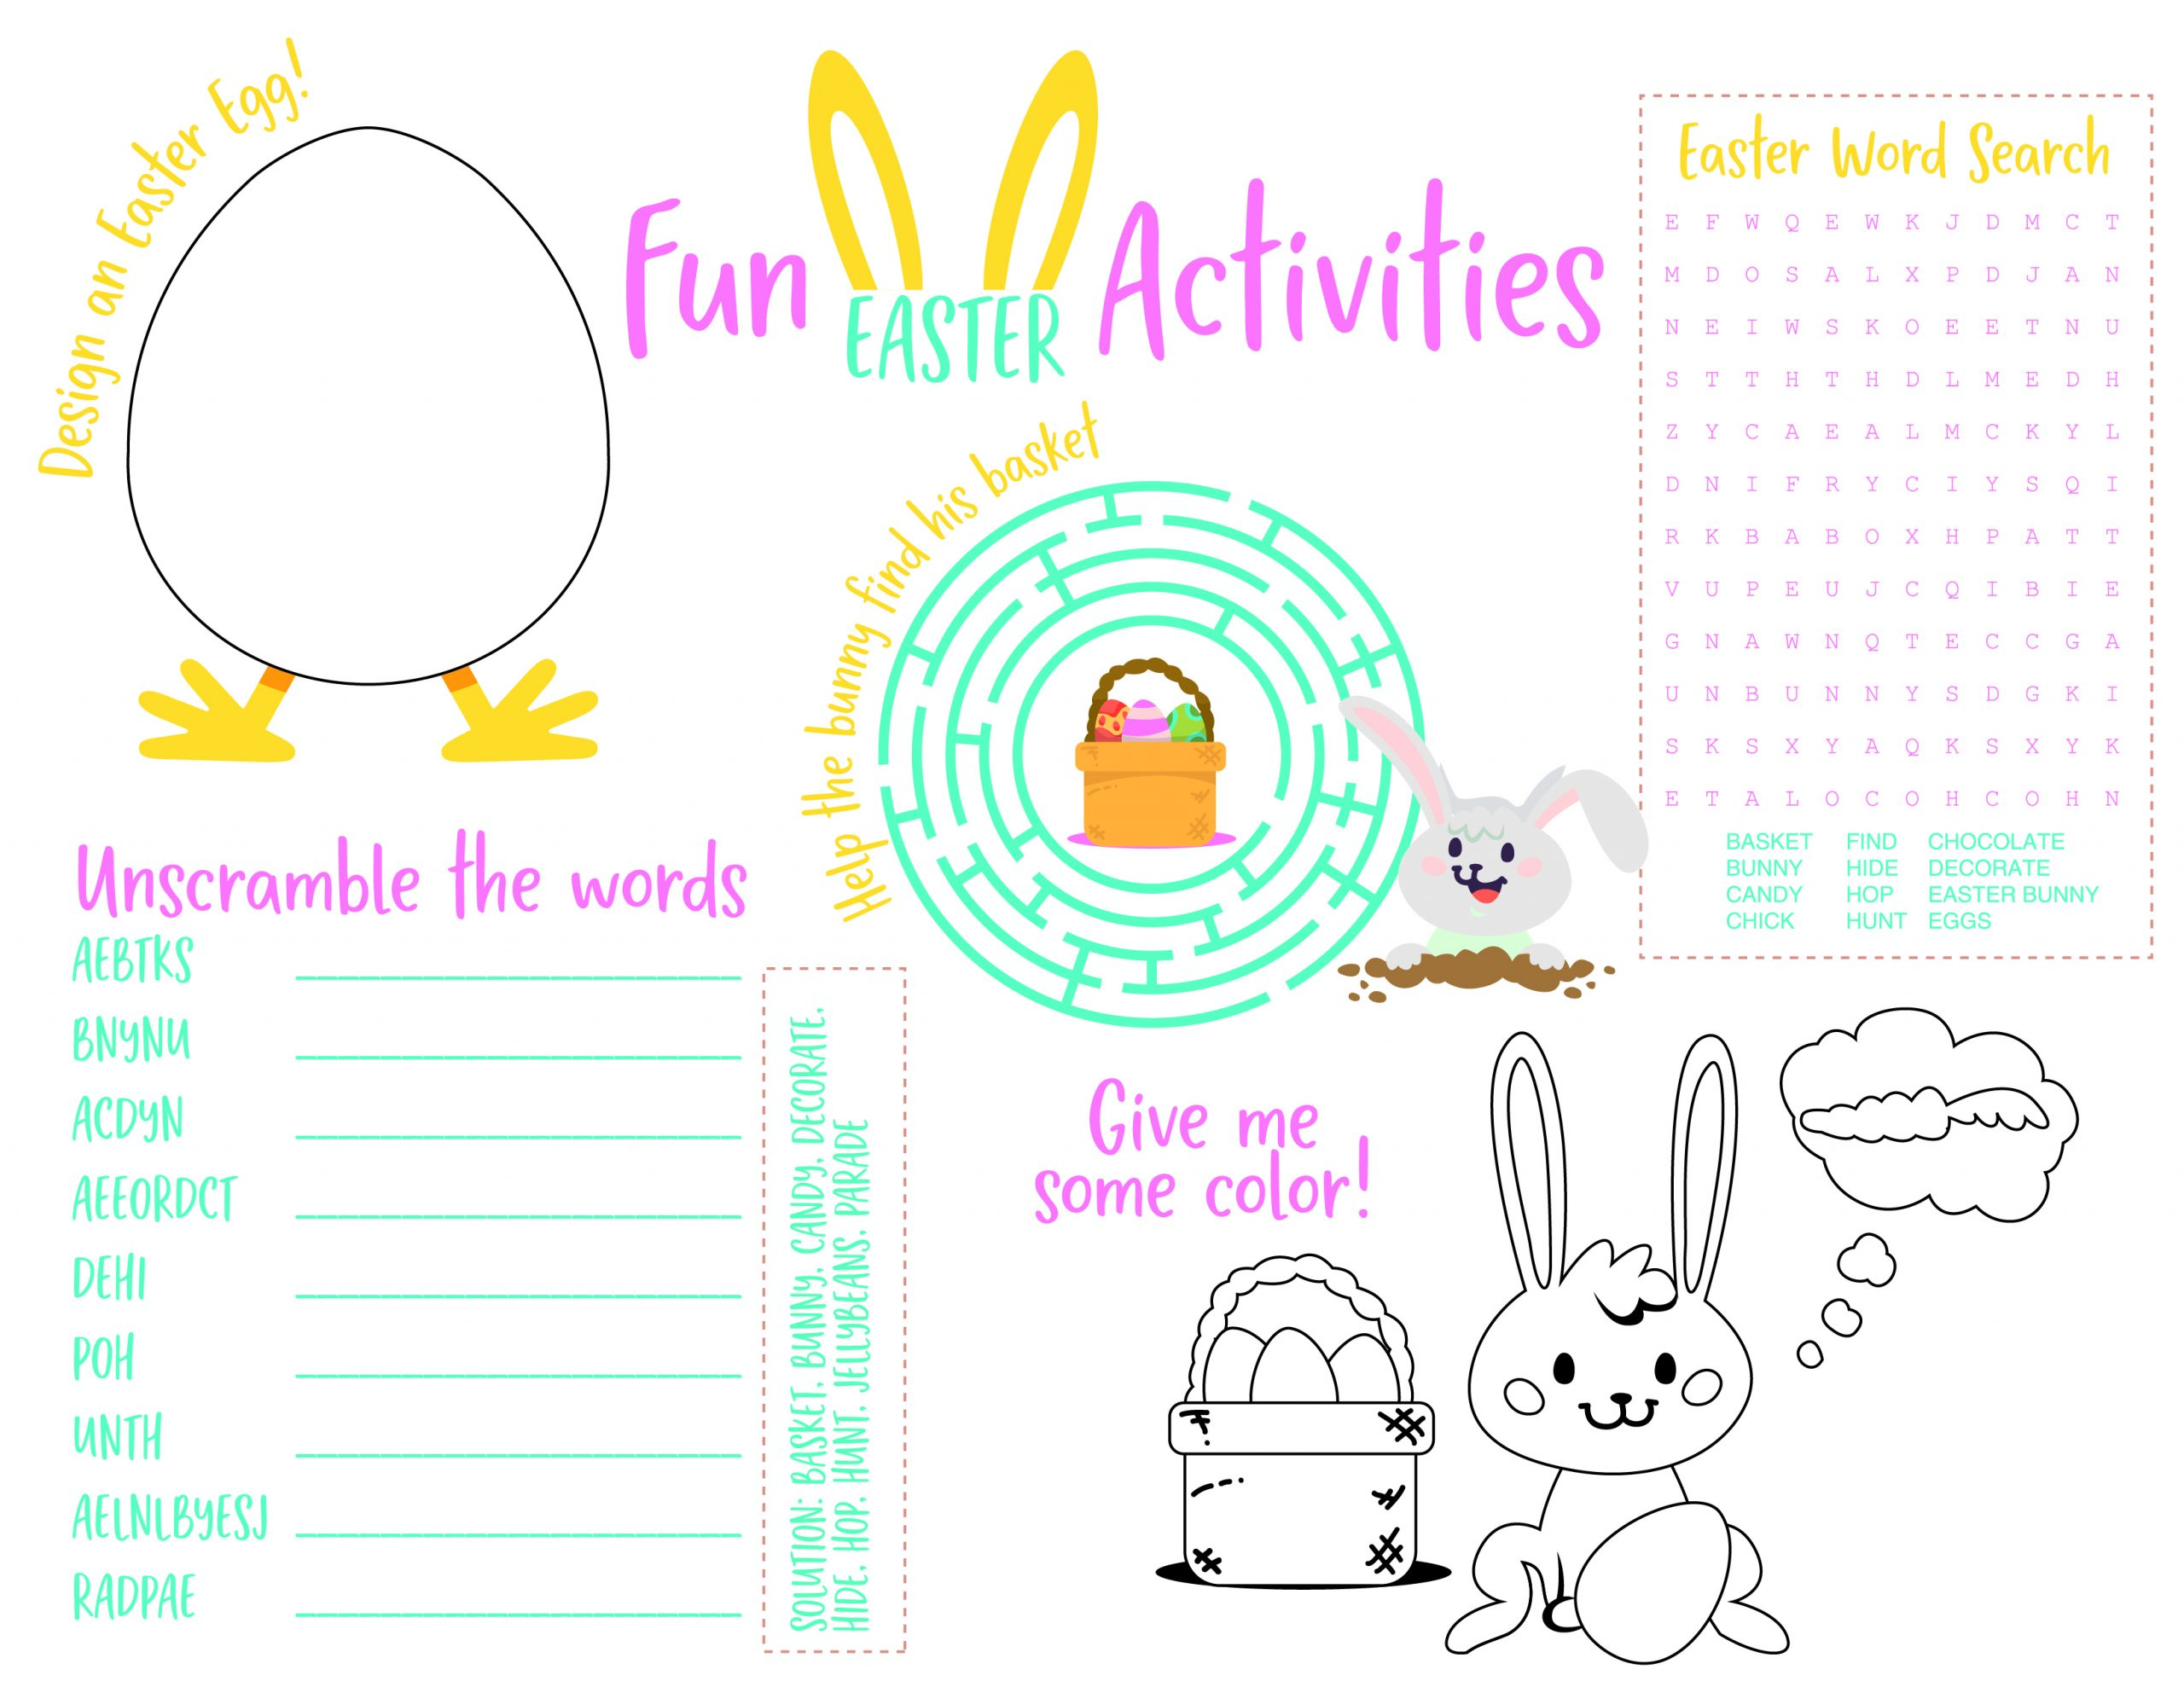 It is a photo of Printable Easter Activities with church